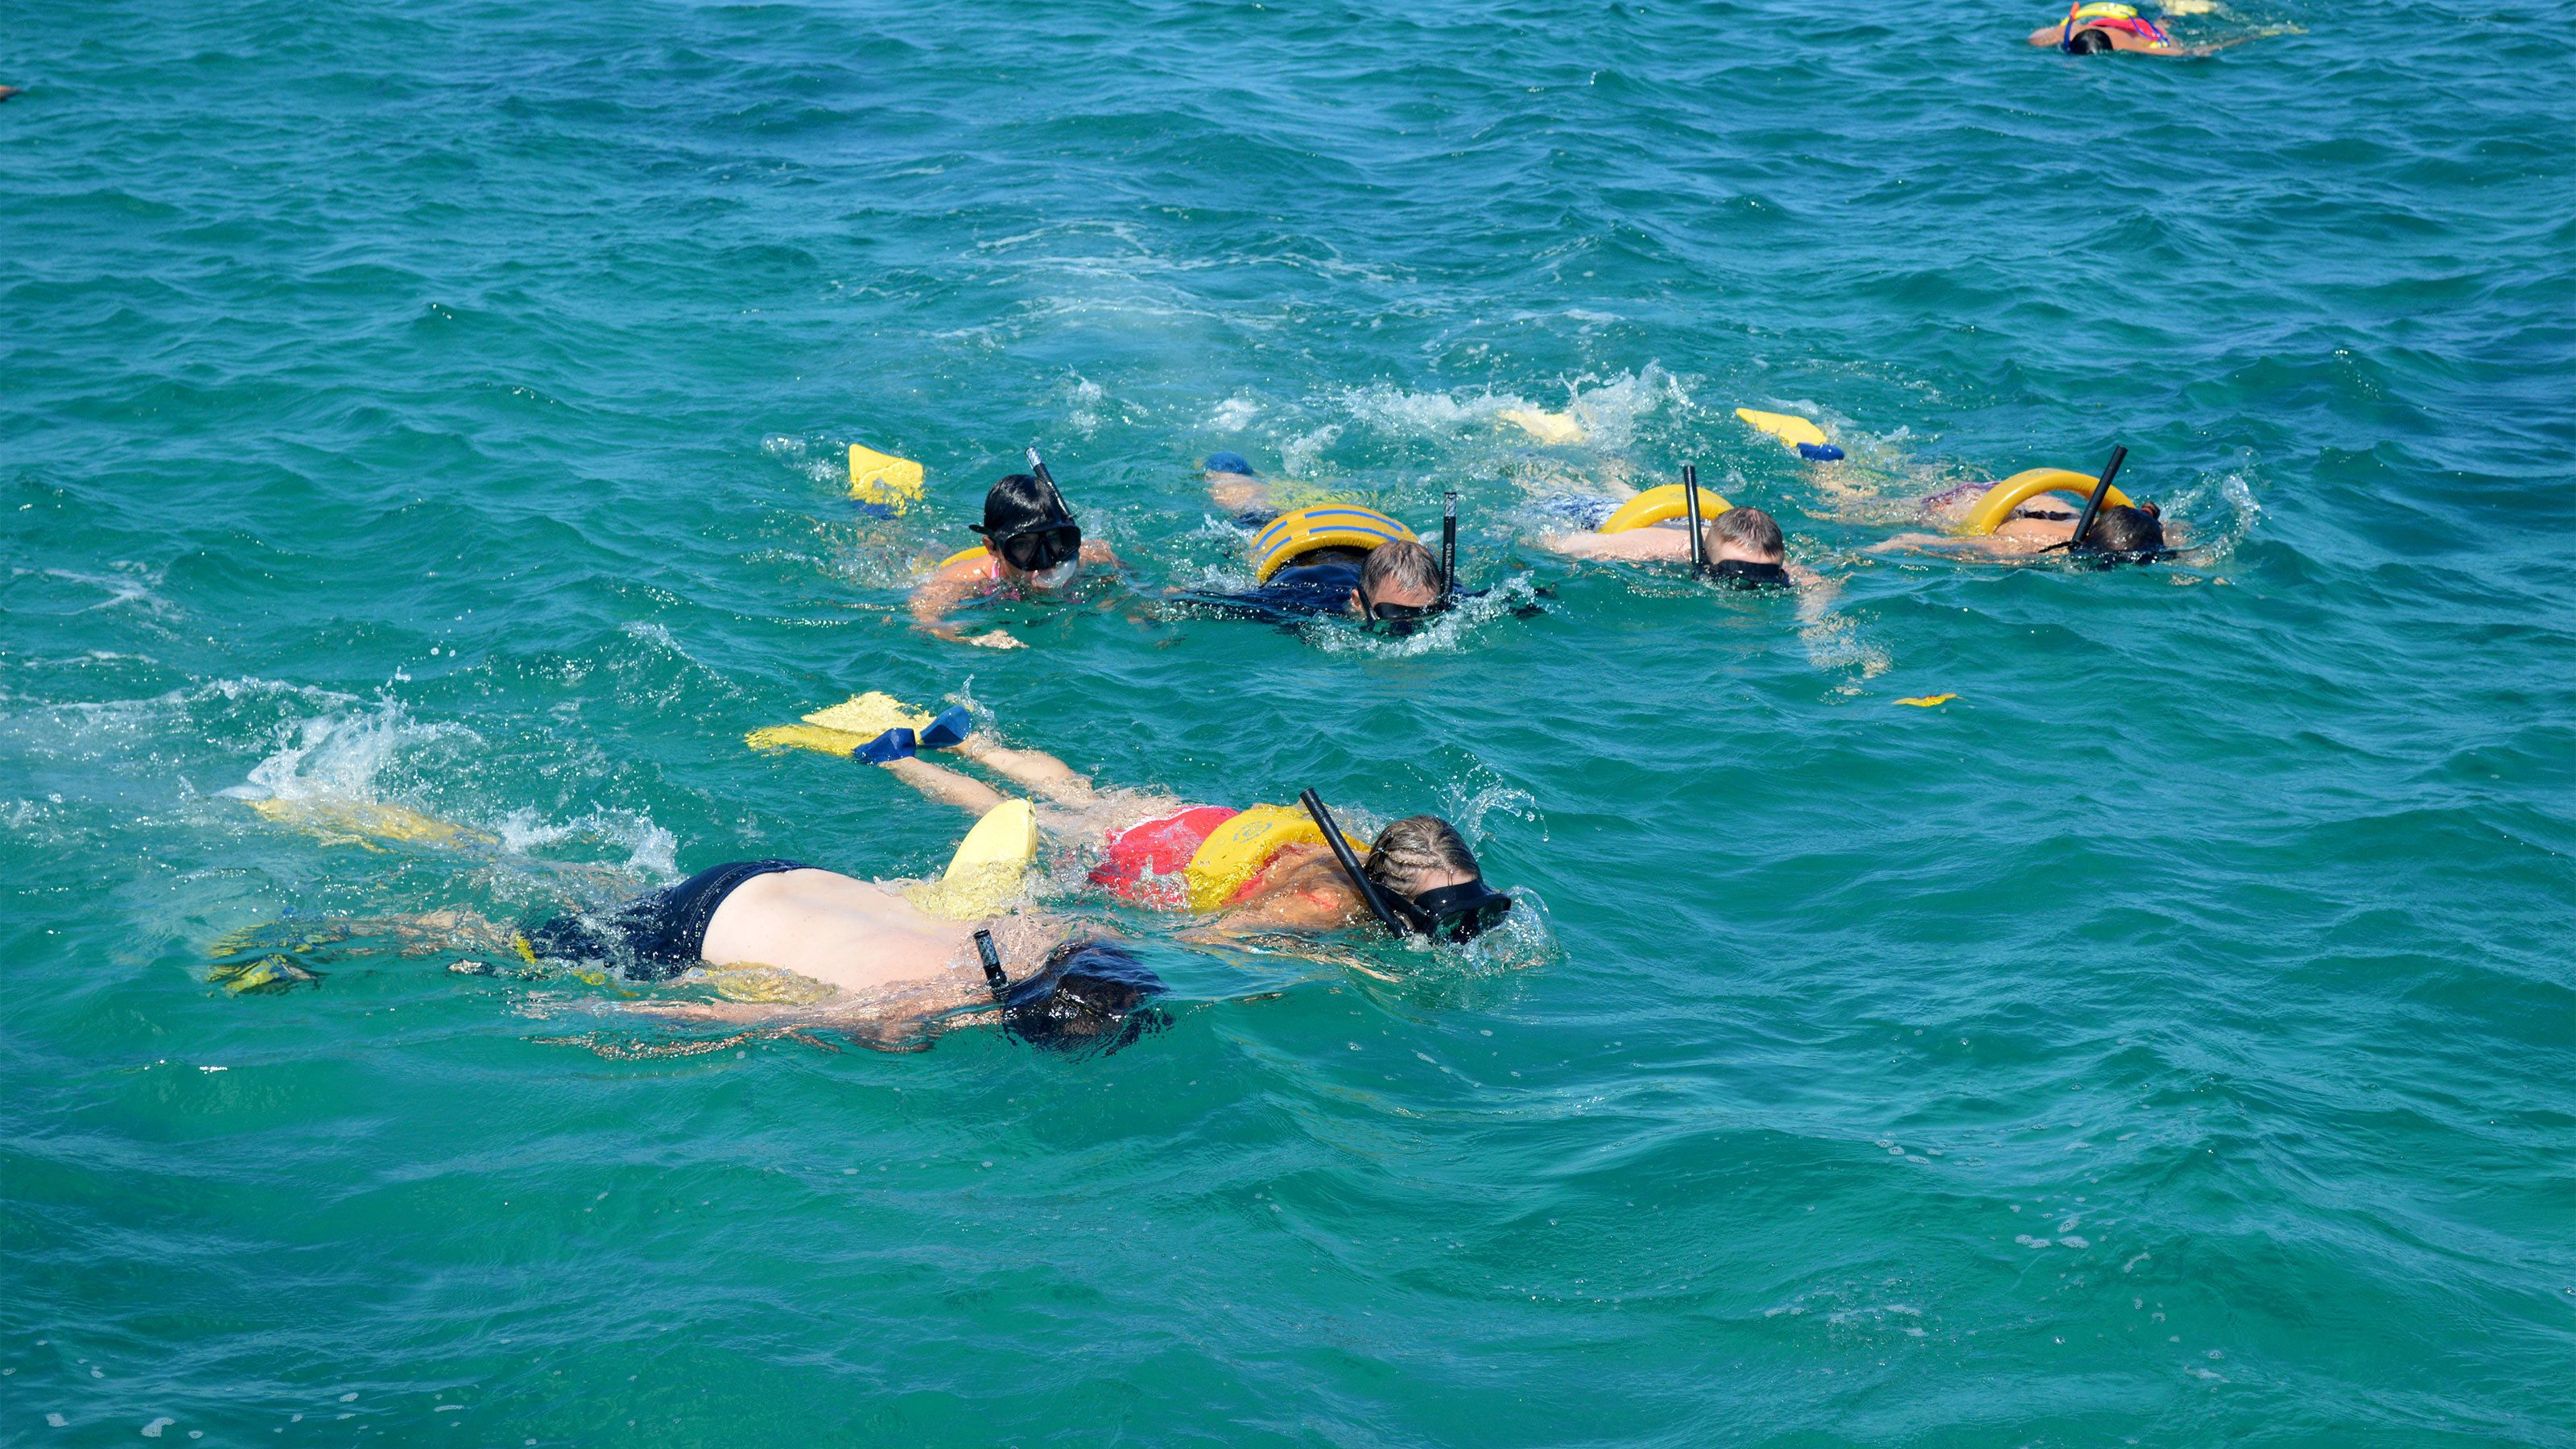 A group of snorkelers in the water near Nevis